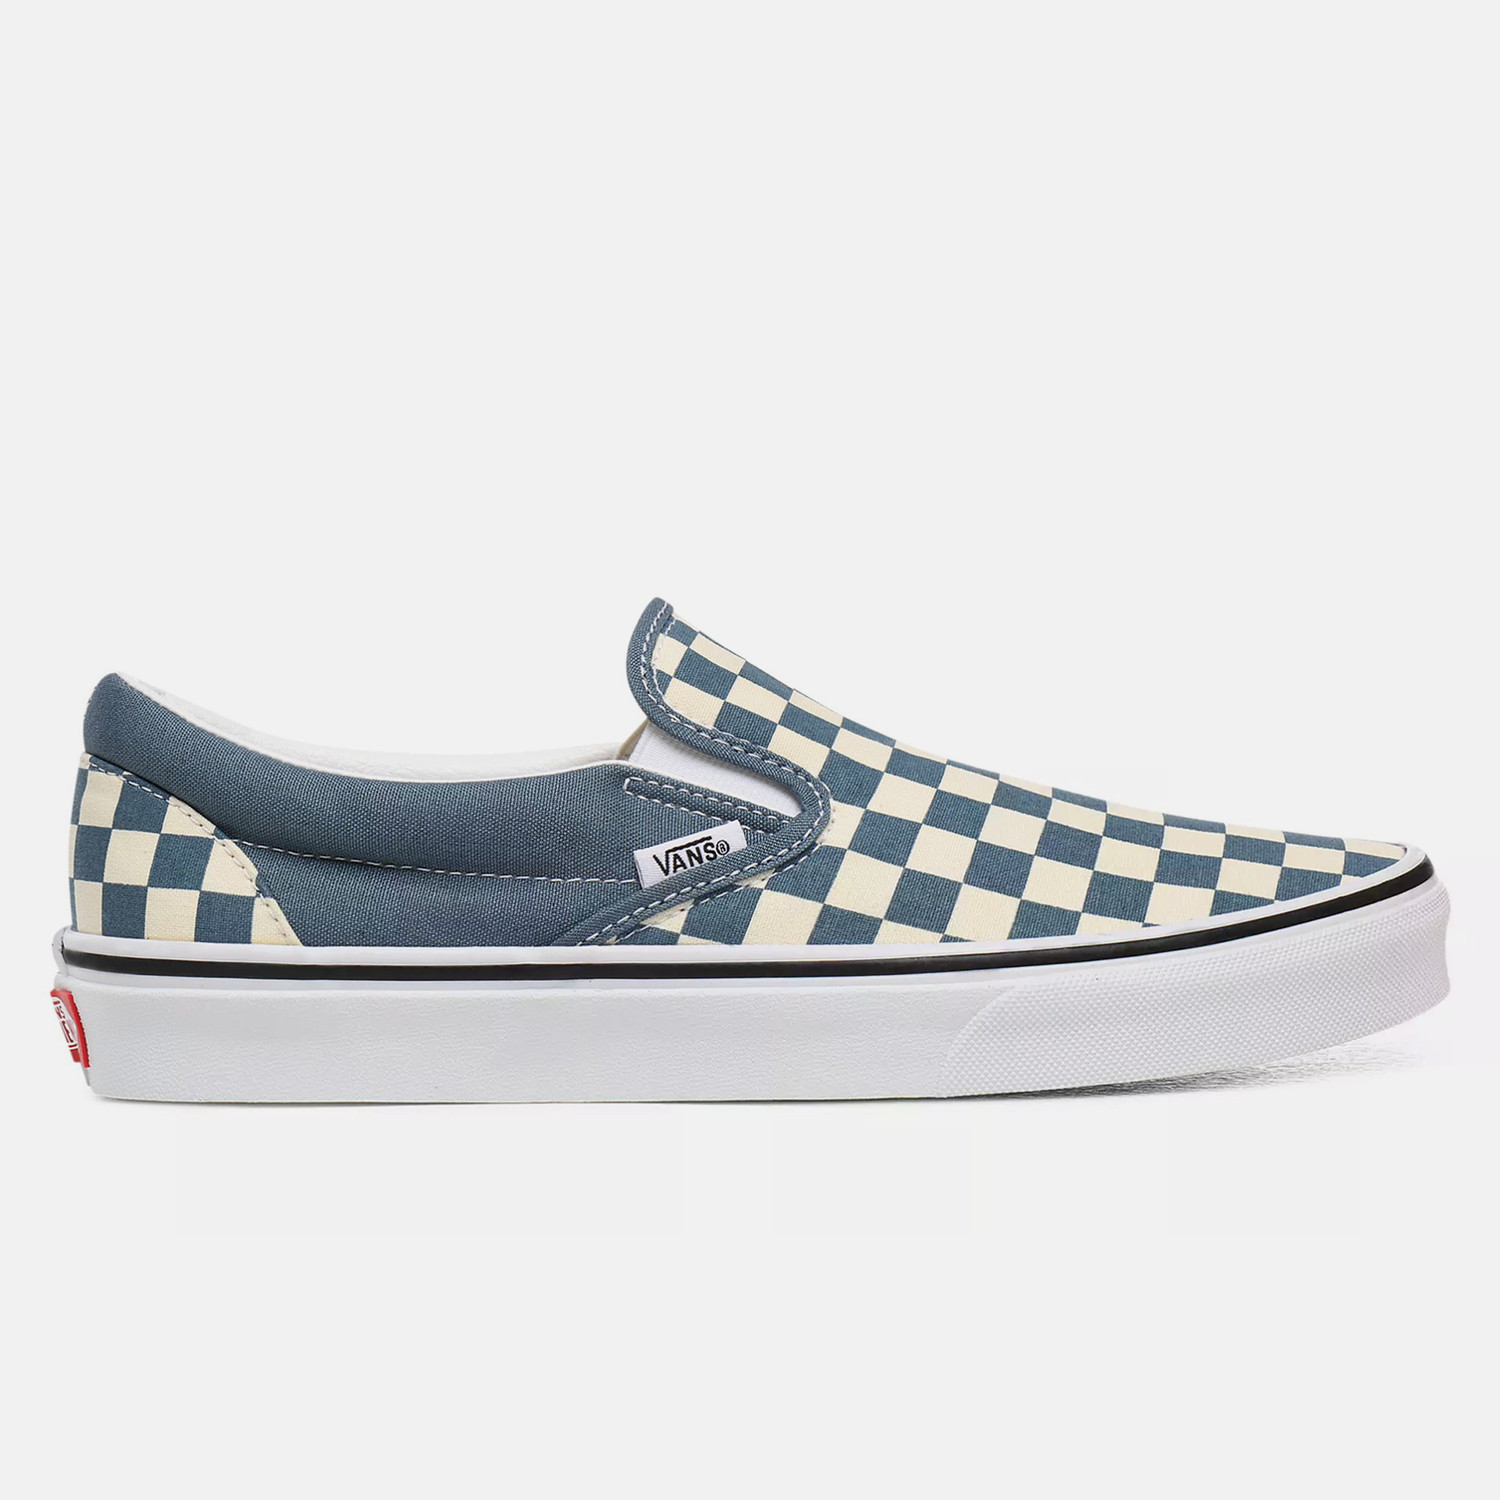 Vans Ua Classic Slip-On Men's Shoes (9000049025_44461)